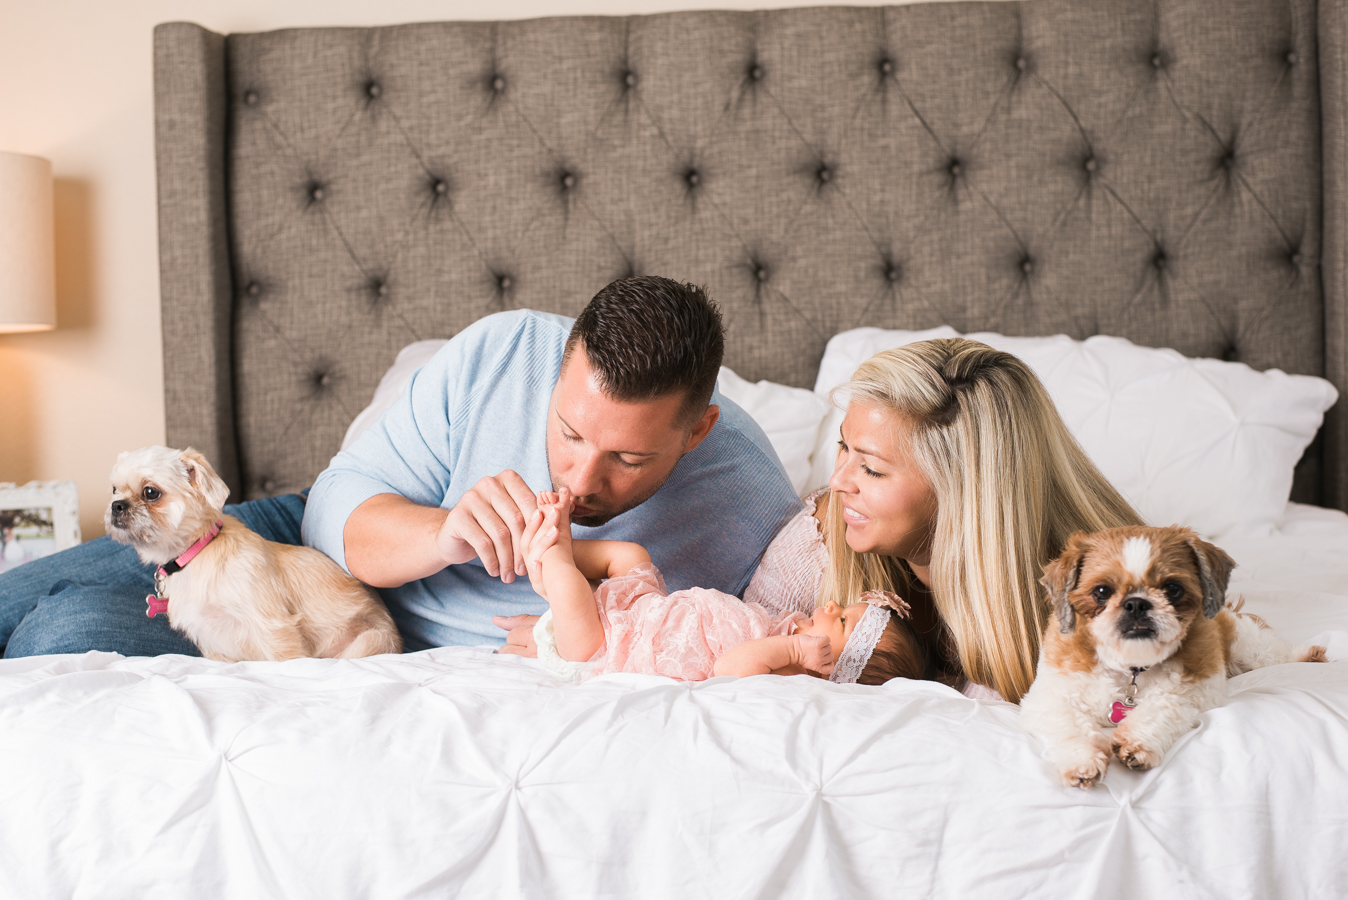 newborn lifestyle photography orlando-36.jpg